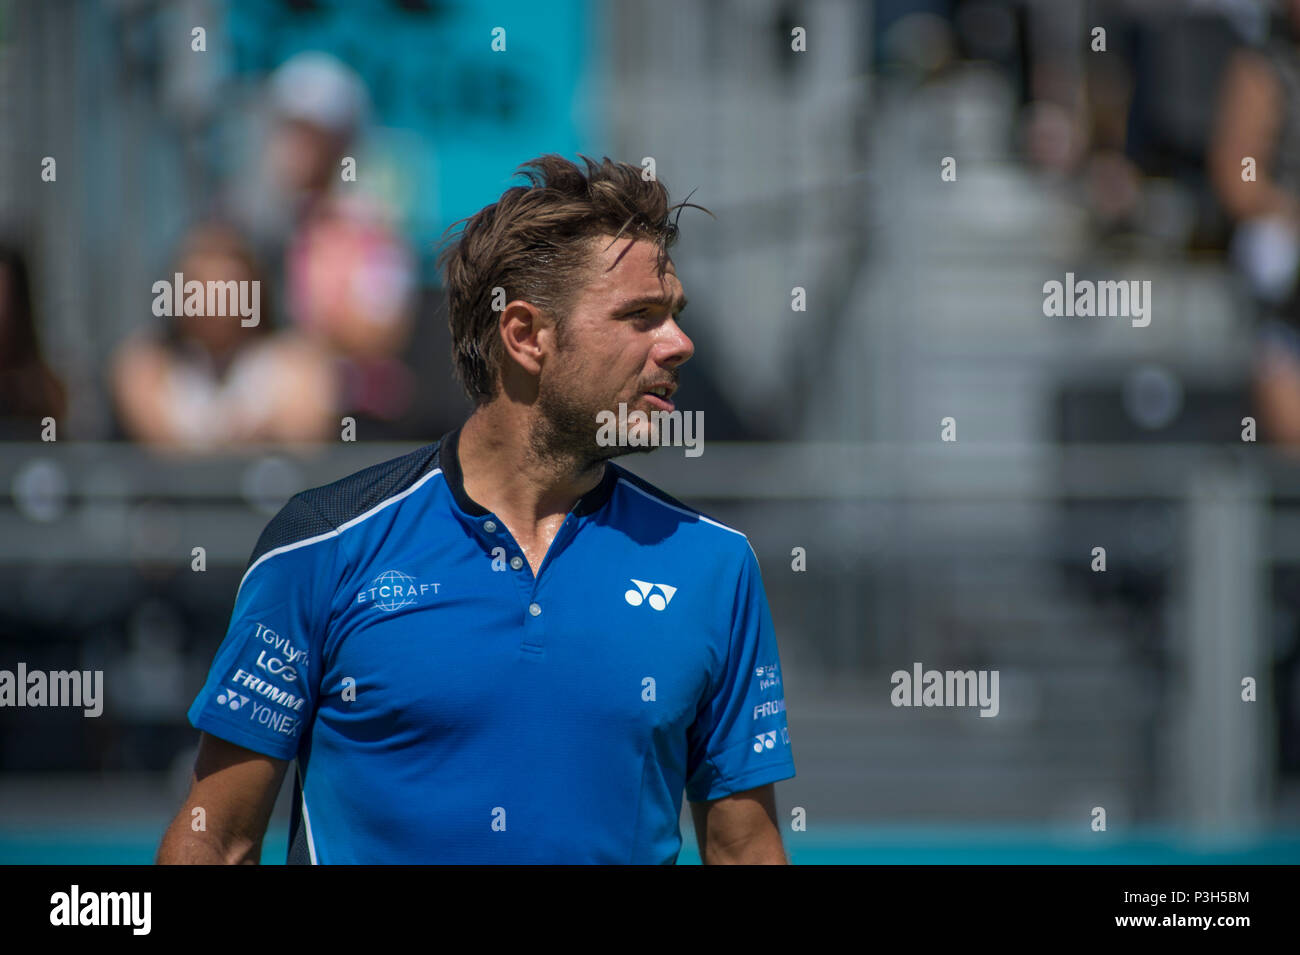 The Queen's Club, London, UK. 18 June, 2018. The Men's grass court tennis championships, a prelude to Wimbledon, on centre court with Stan Wawrinka (SUI) vs Cameron Norrie (GBR). Credit: Malcolm Park/Alamy Live News. - Stock Image